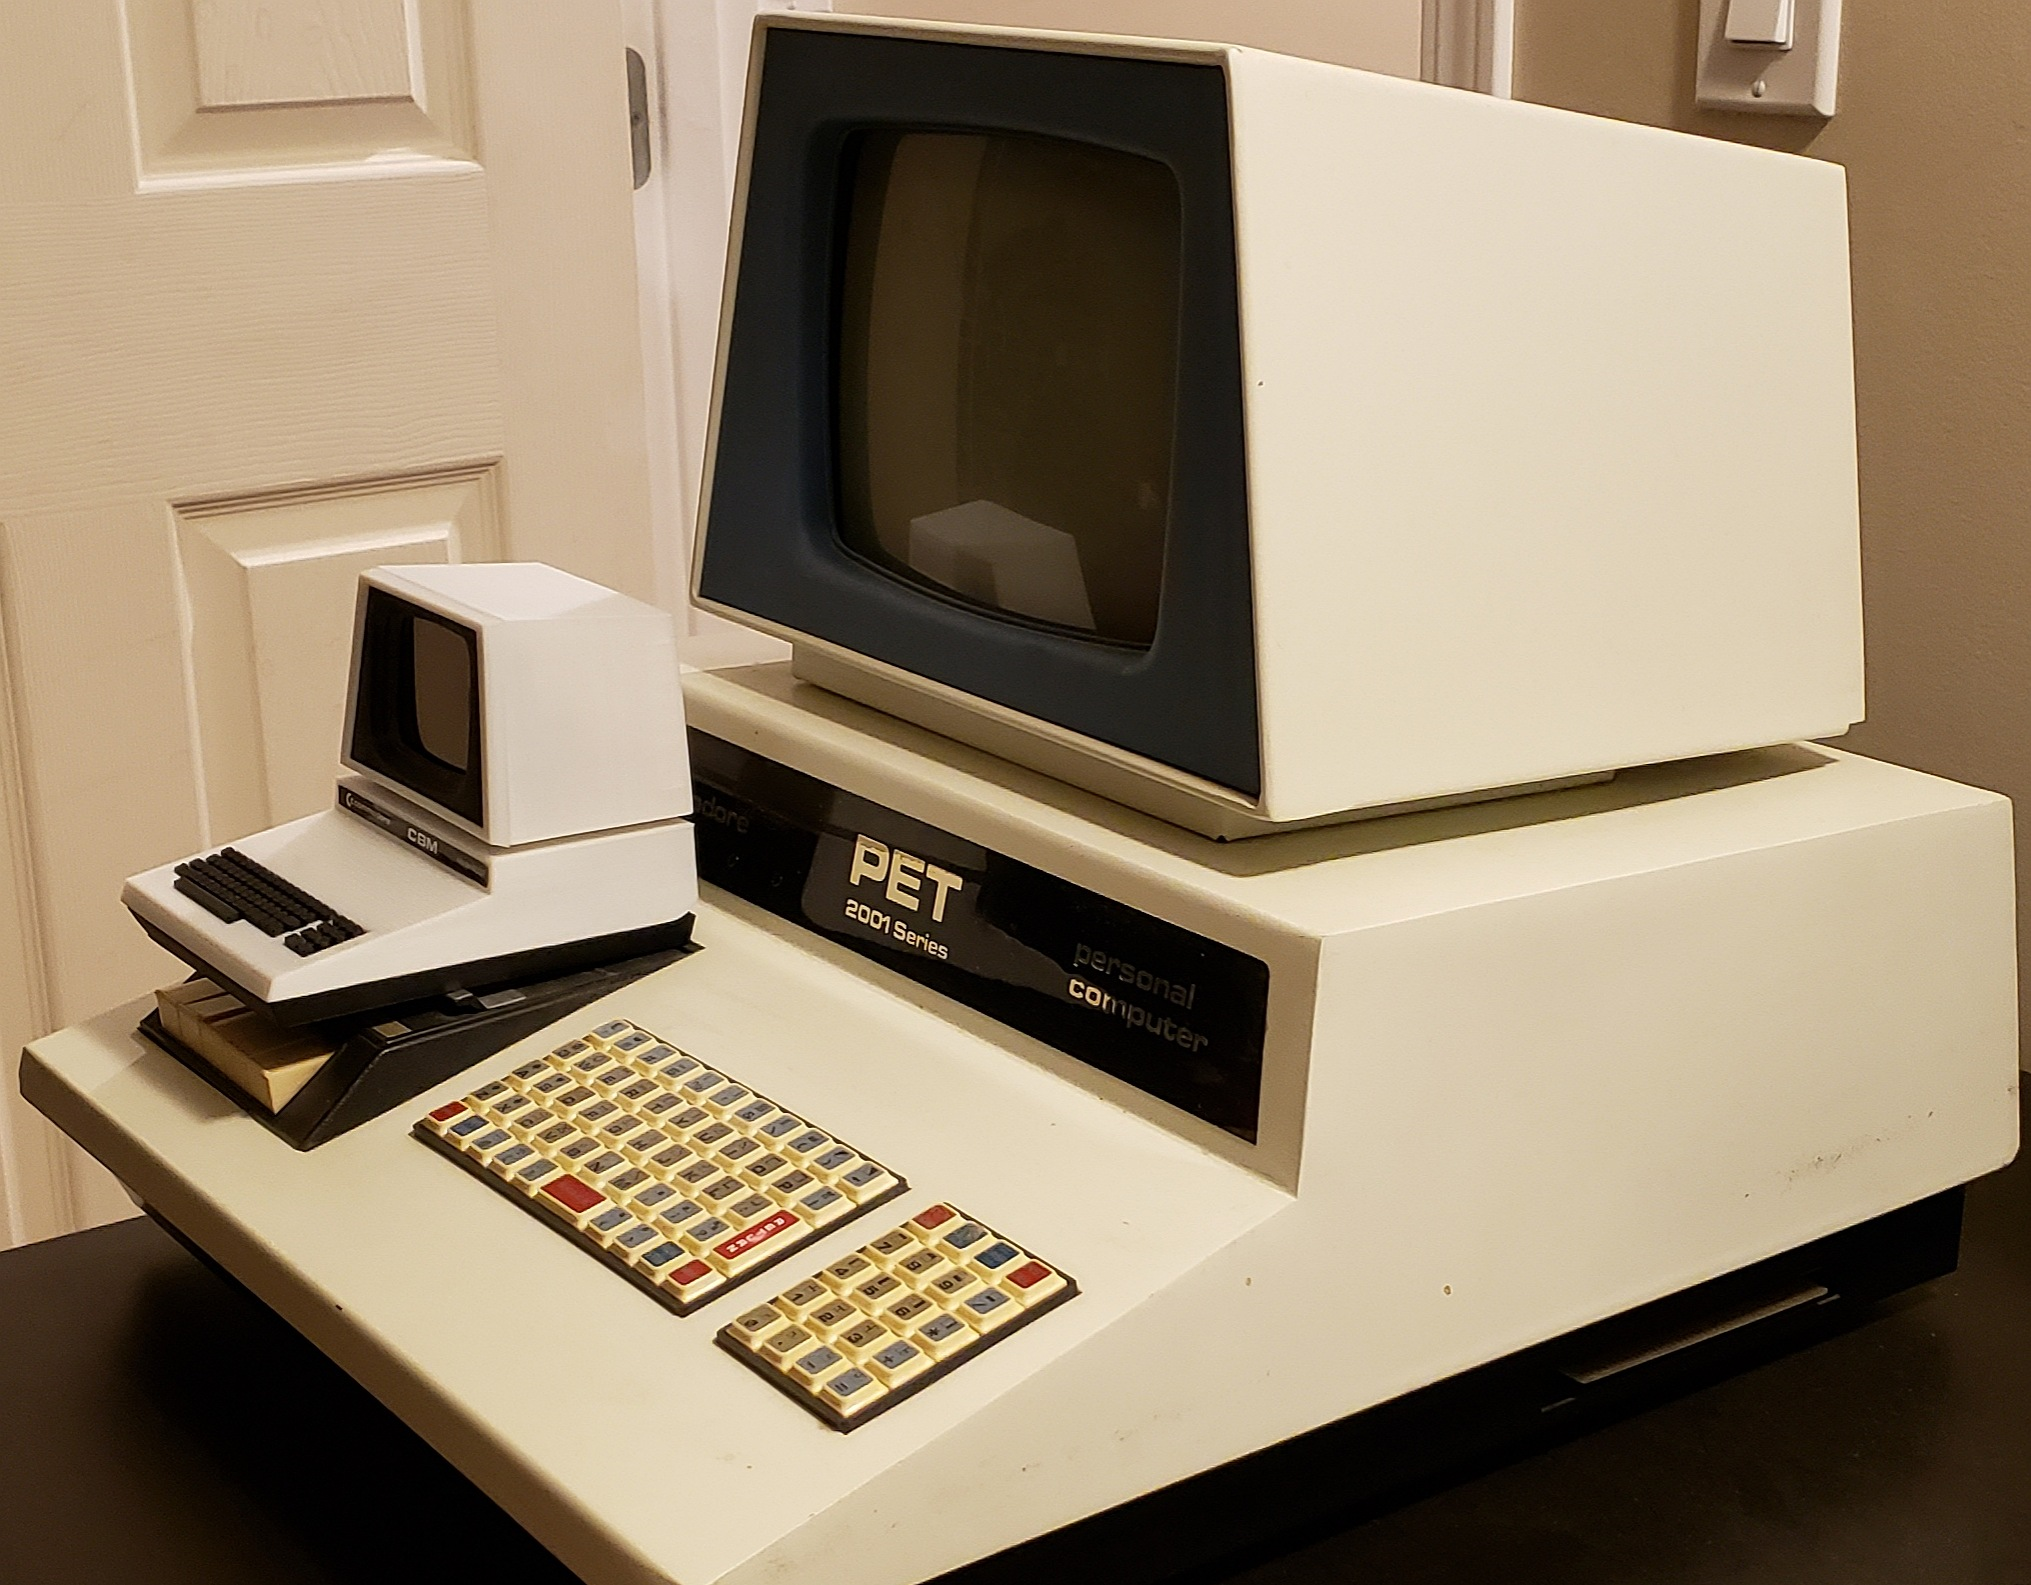 Commodore computers !